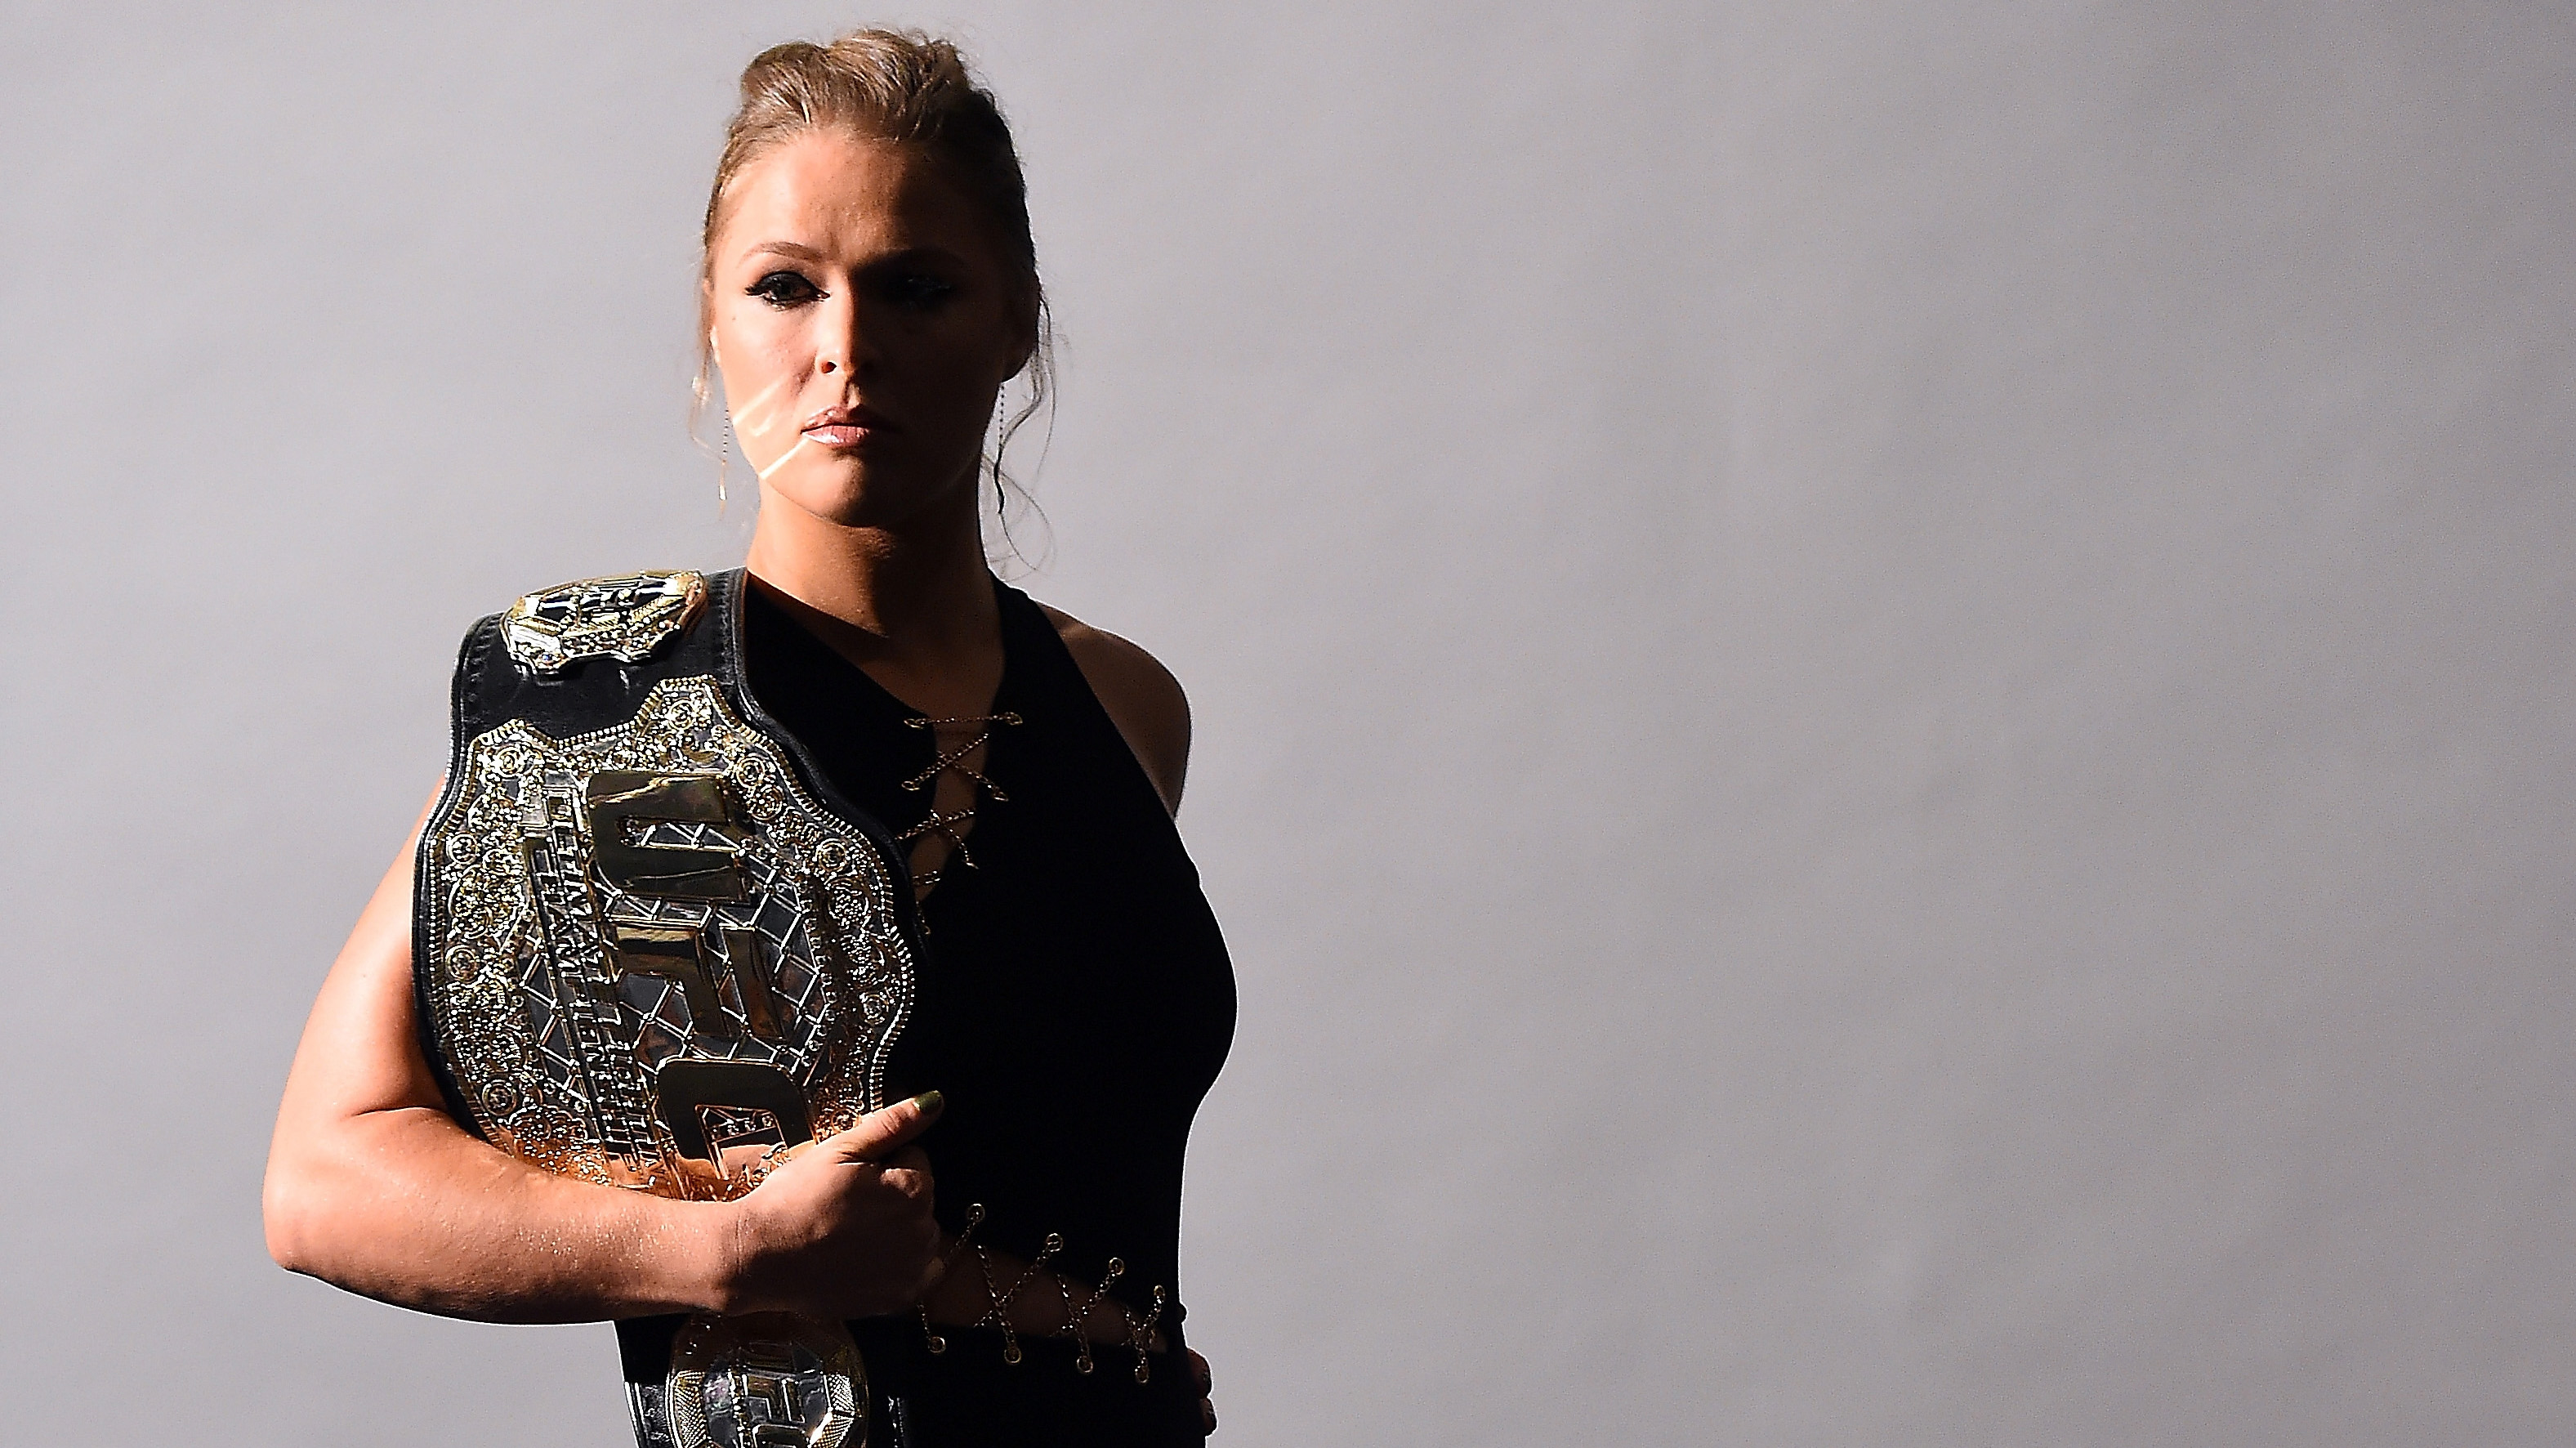 Ronda Rousey poses for a backstage portrait inside MGM Grand Garden Arena on September 4, 2015 in Las Vegas, Nevada. (Photo by Jeff Bottari/Zuffa LLC/Zuffa LLC via Getty Images)